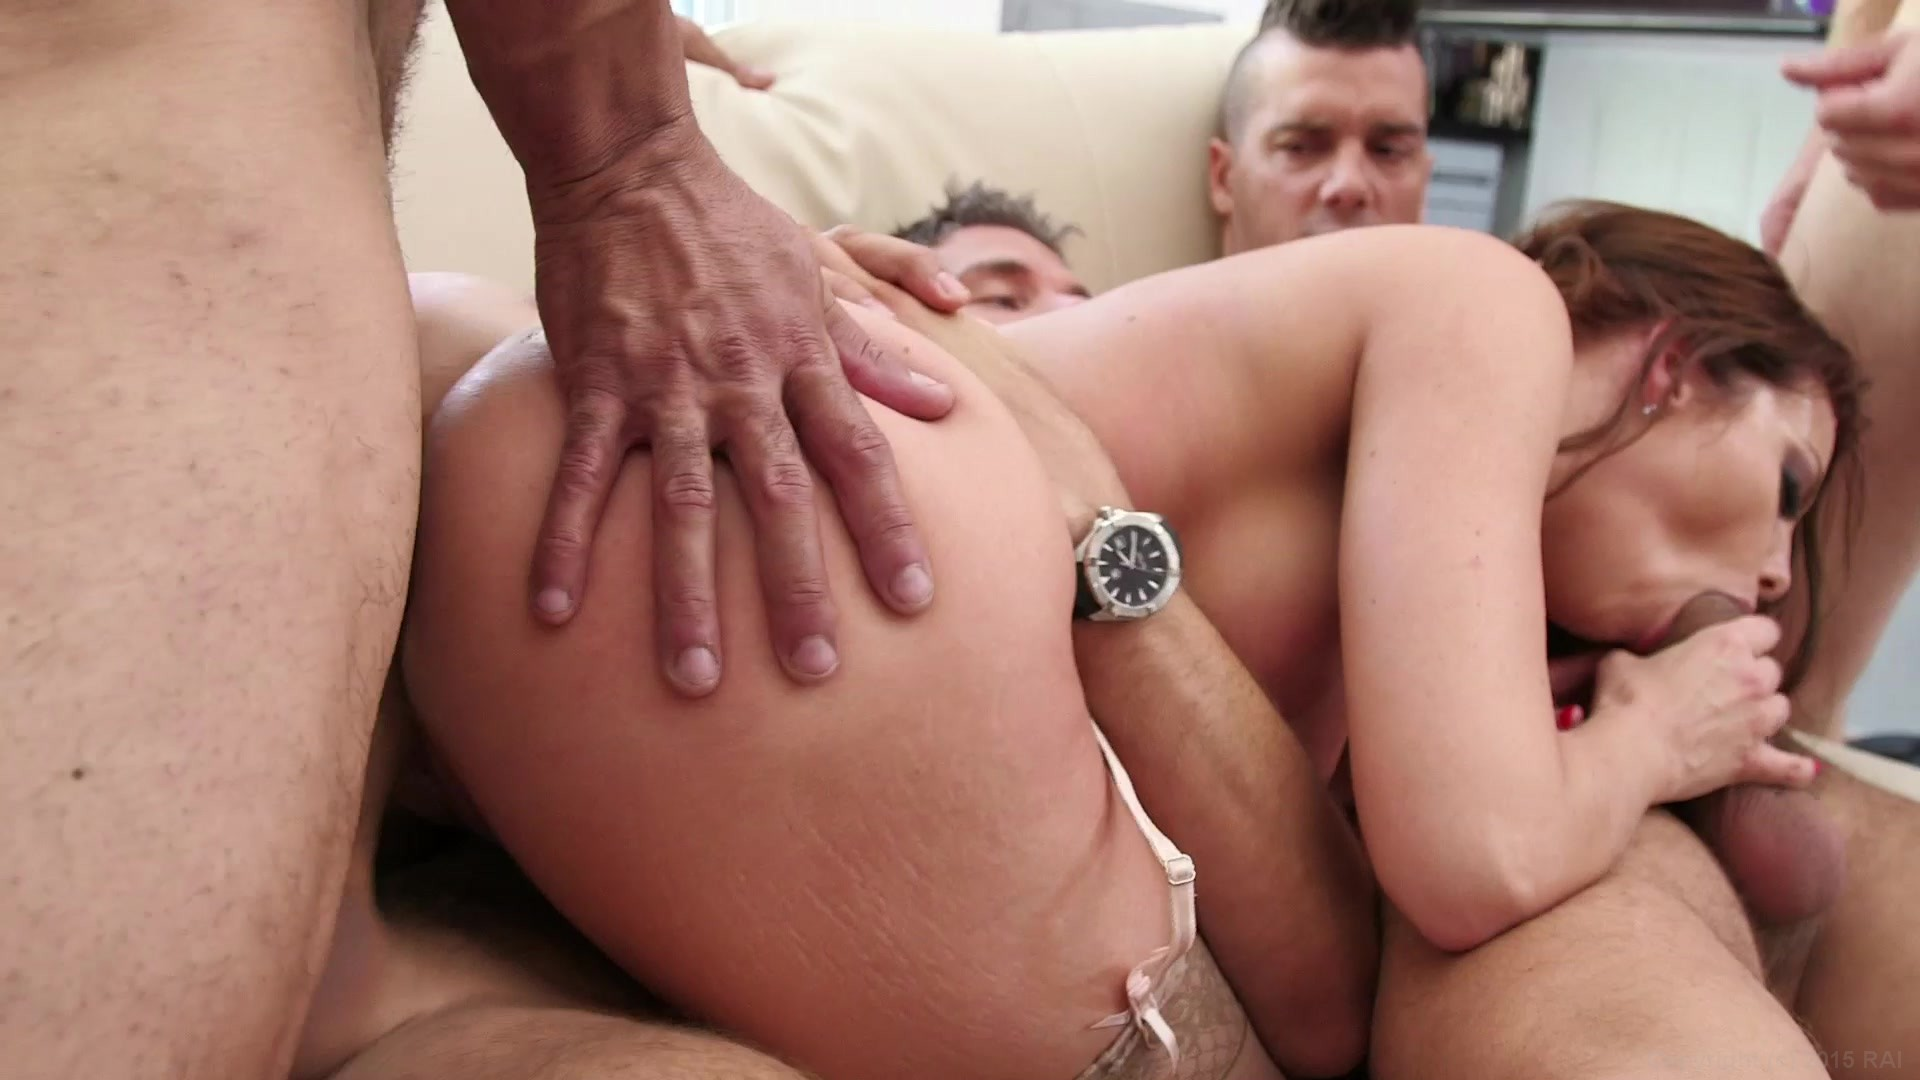 Adult xxx gang bang